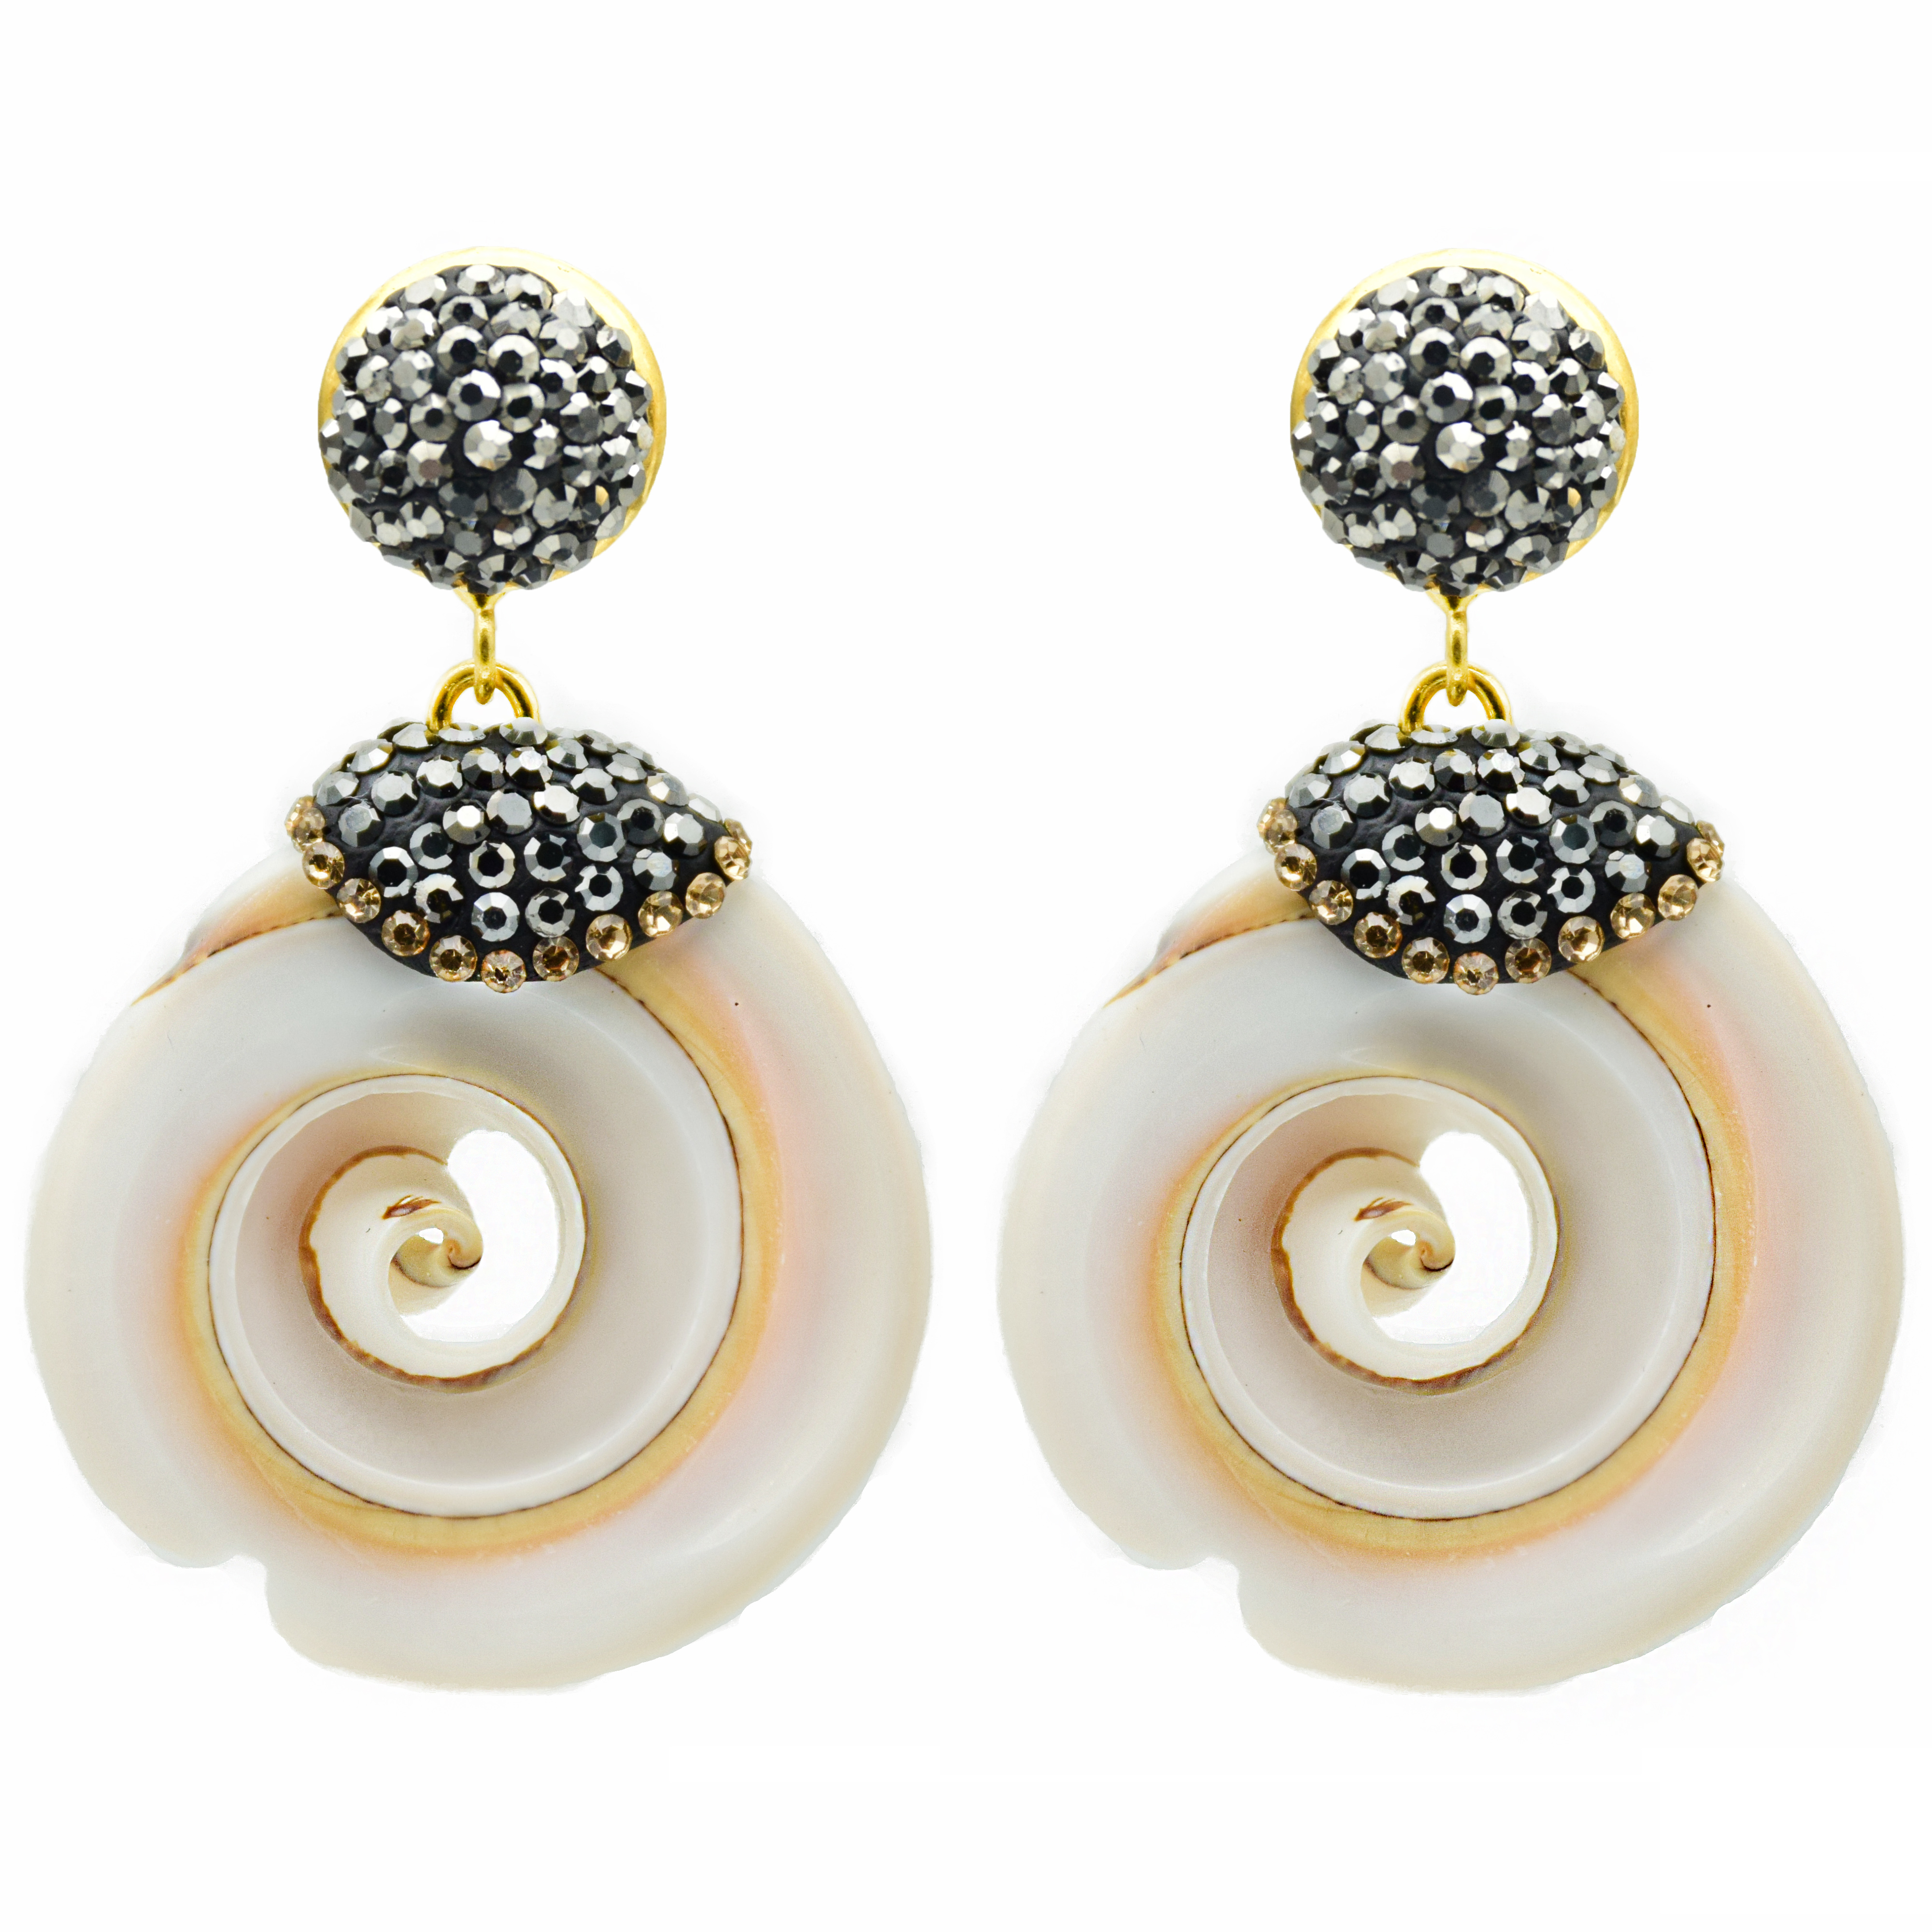 Handmade Jewelry Round Shell Earrings For Women 2019 High Quality Geometry Summer Beach Earrings Wedding Party EH0090